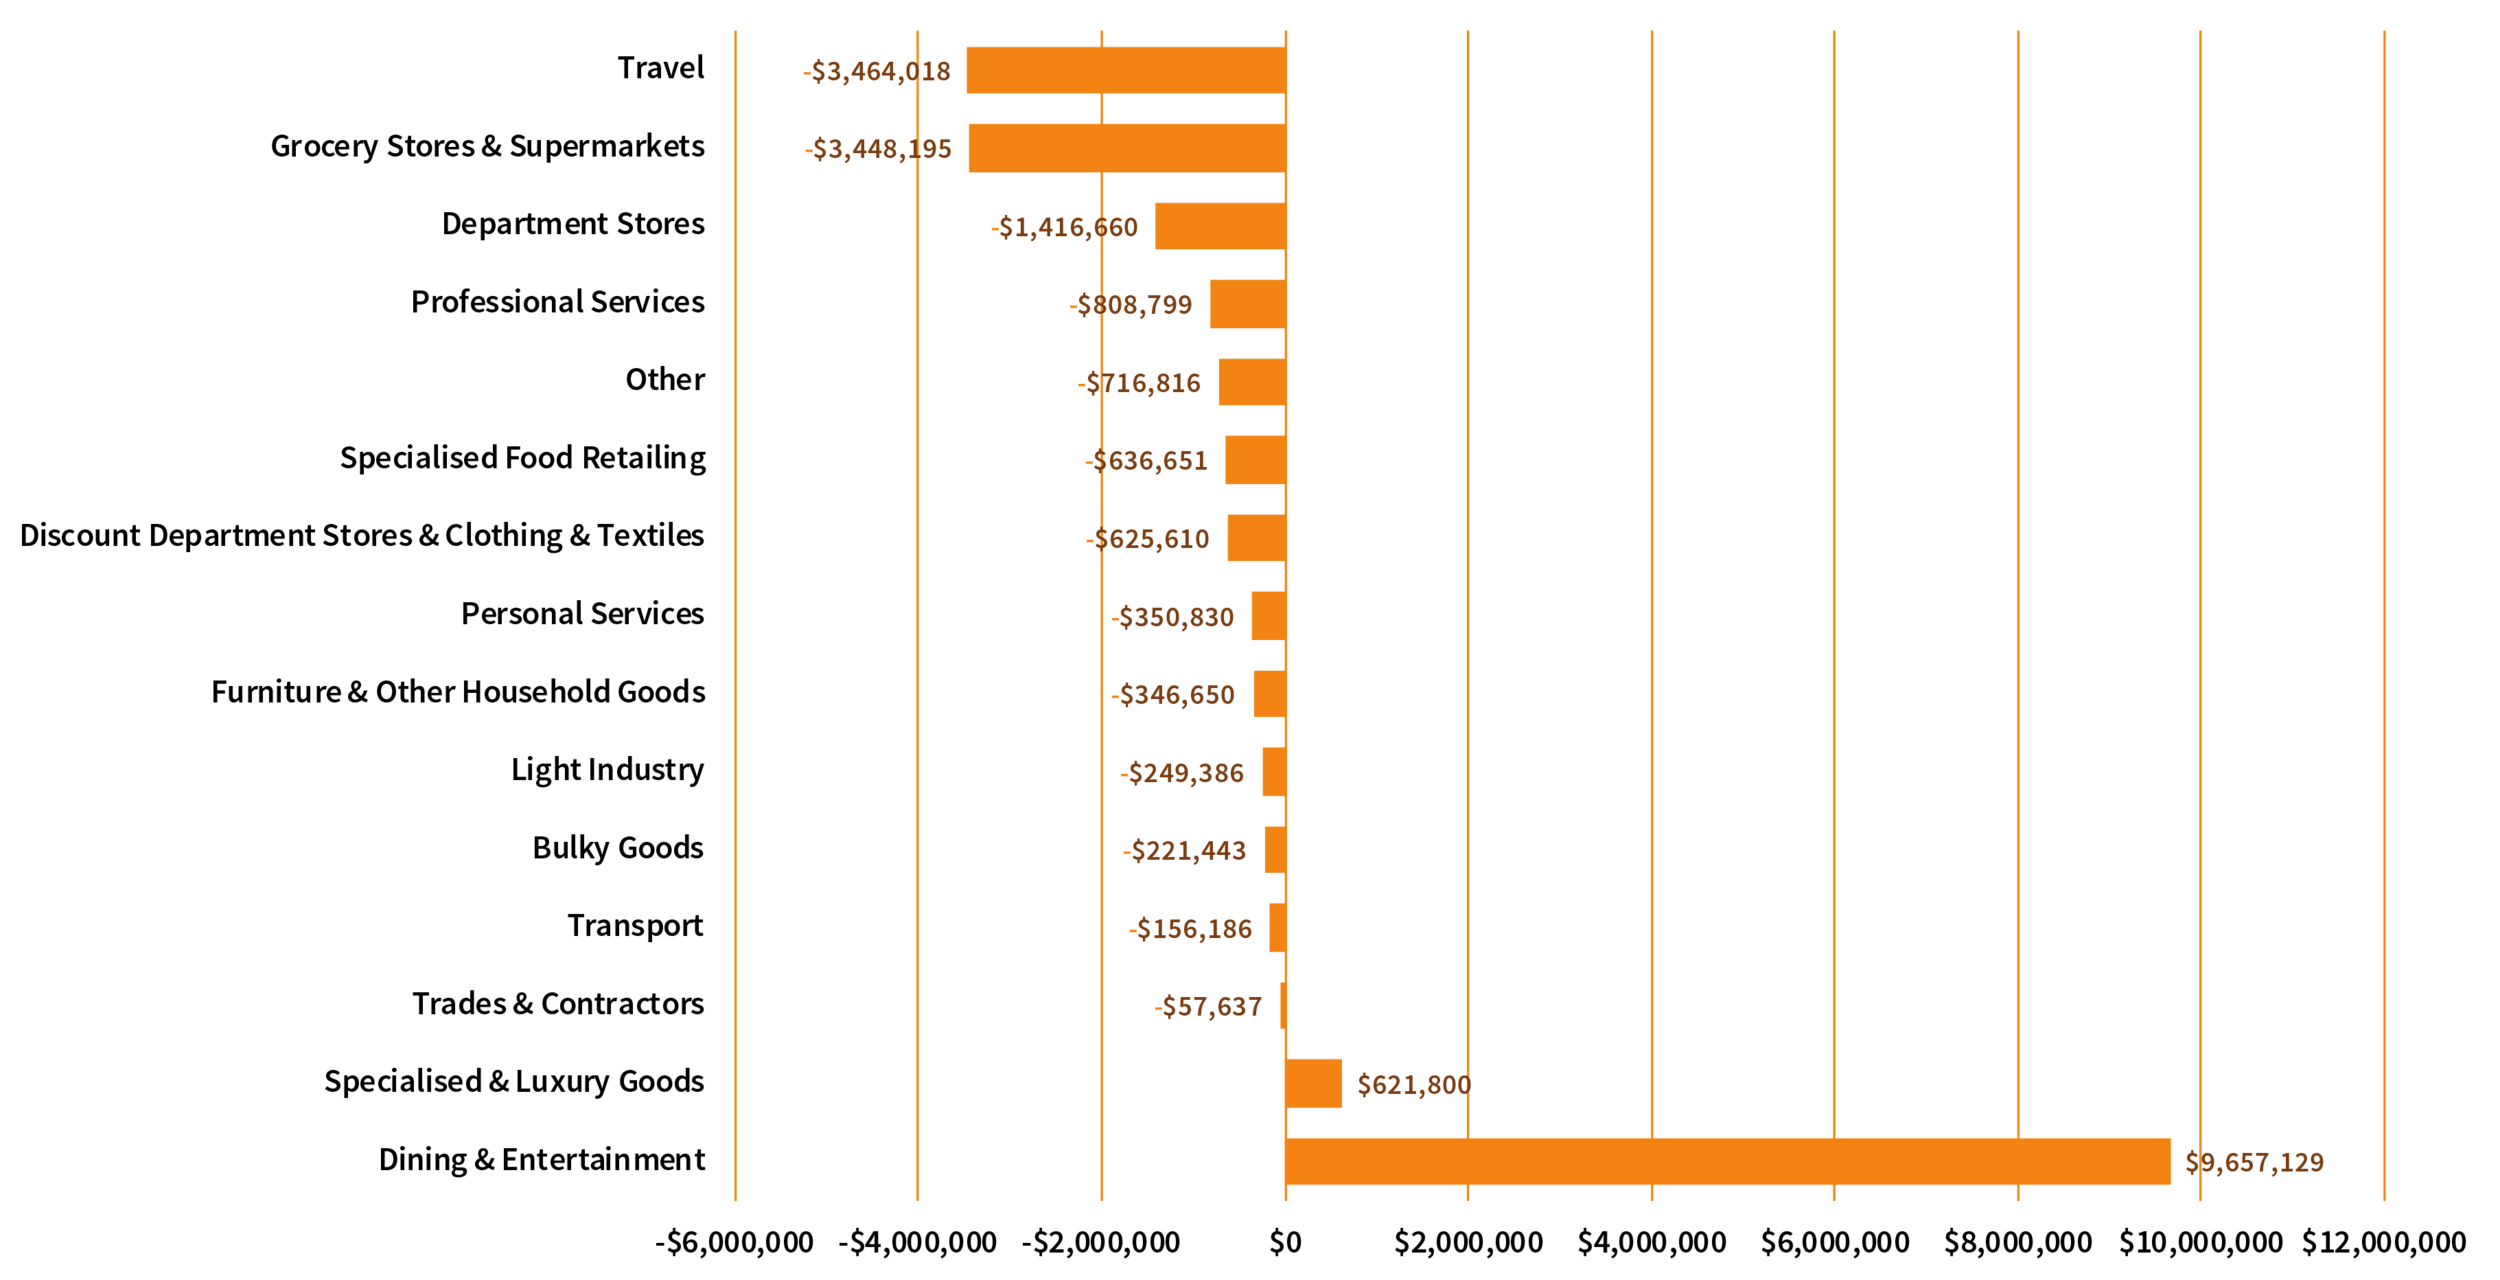 Figure 3 shows the breakdown in spend by spend category, as a change between 2017 and 2018